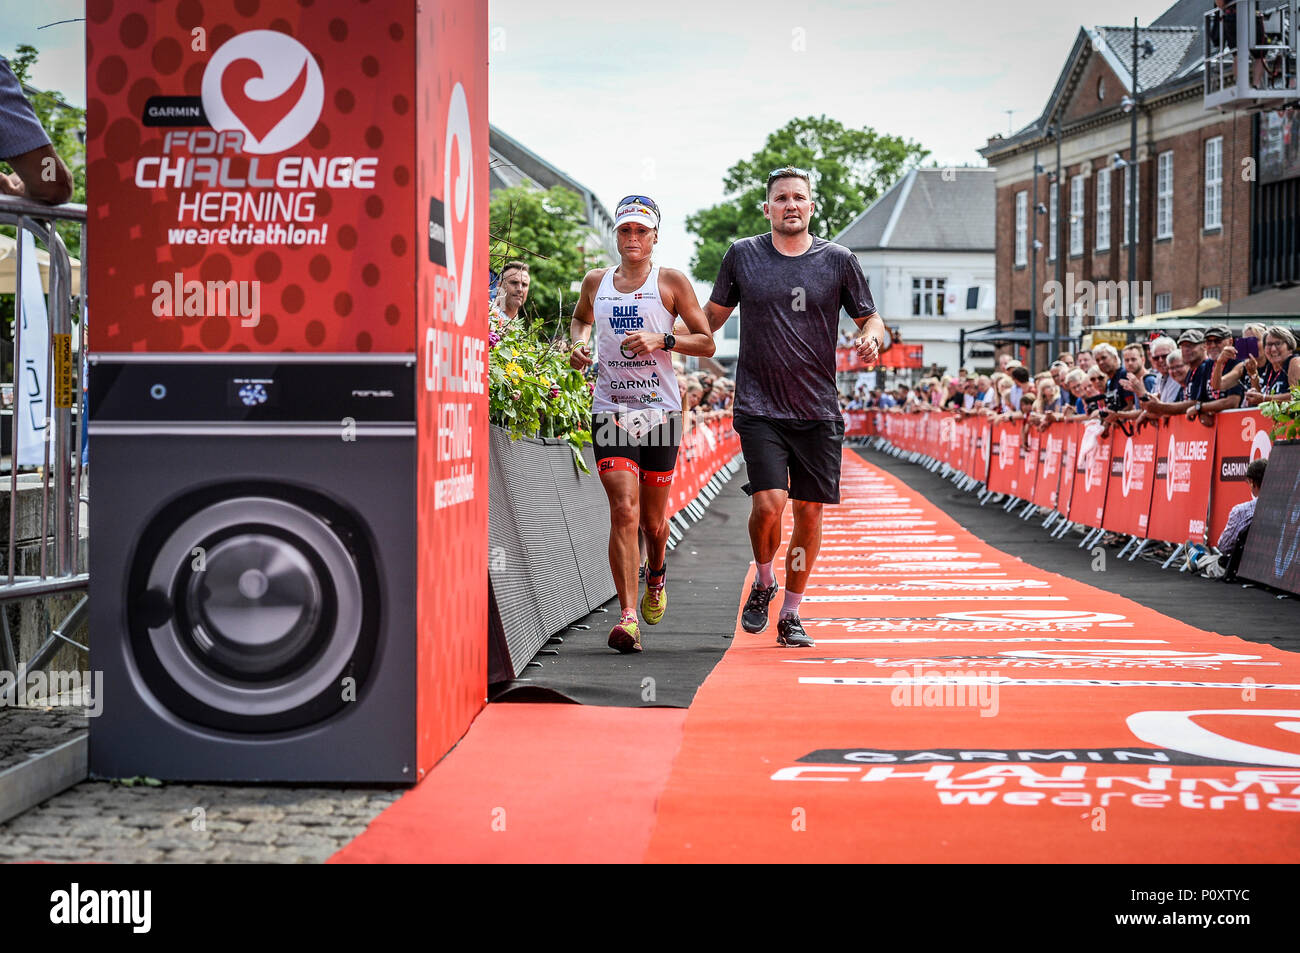 Herning, Denmark, 9th June 2018 UK Sport: Camilla Pedersen is escorted from the course during the middle distance triathlon in Herning  Credit Northern Sport/Alamy Live News Stock Photo